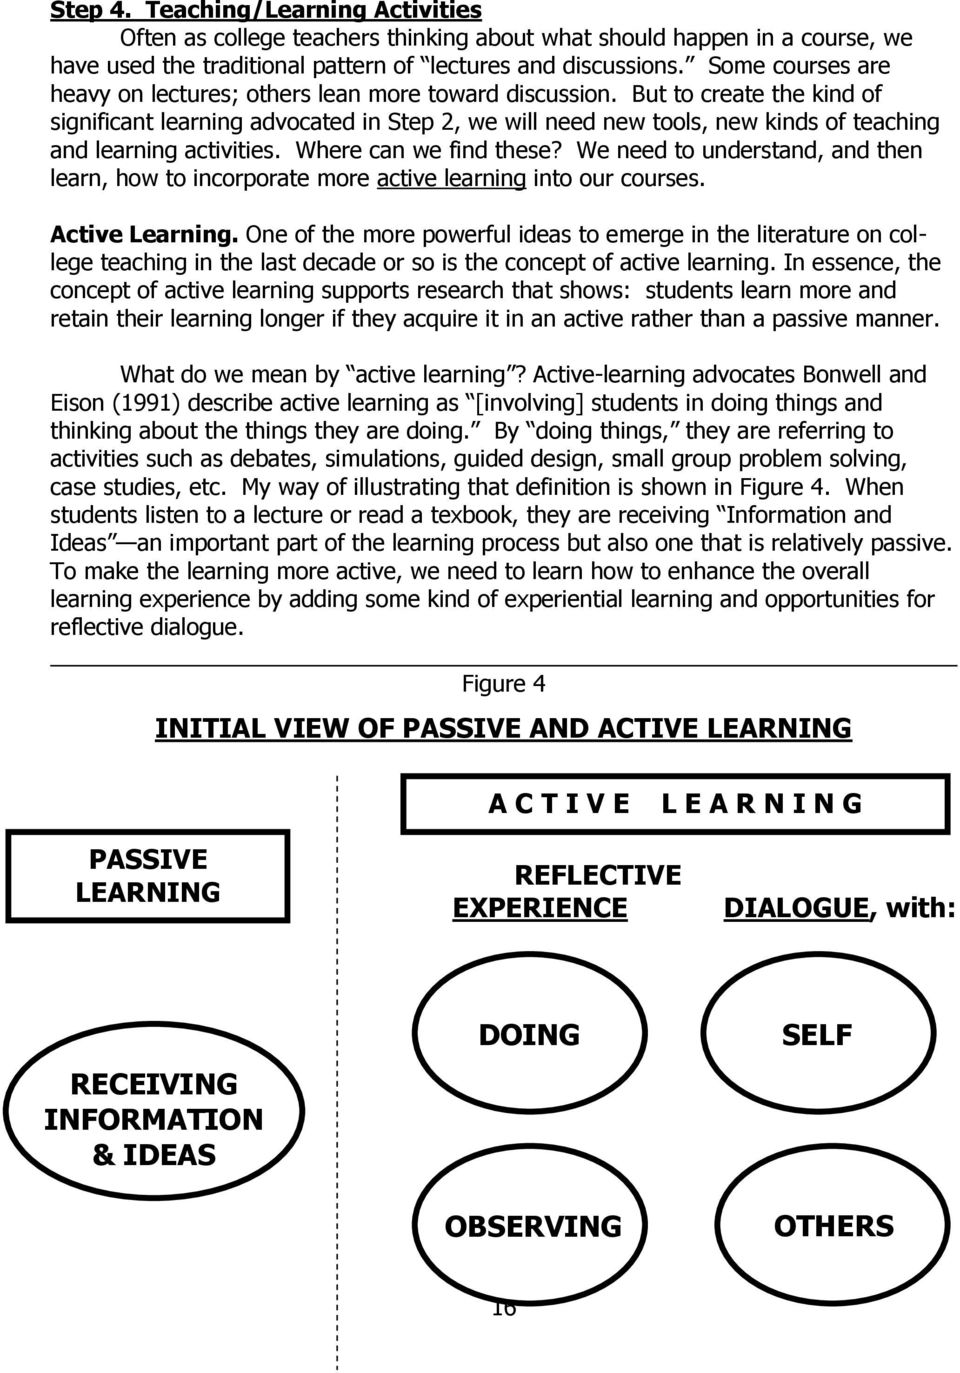 But to create the kind of significant learning advocated in Step 2, we will need new tools, new kinds of teaching and learning activities. Where can we find these?